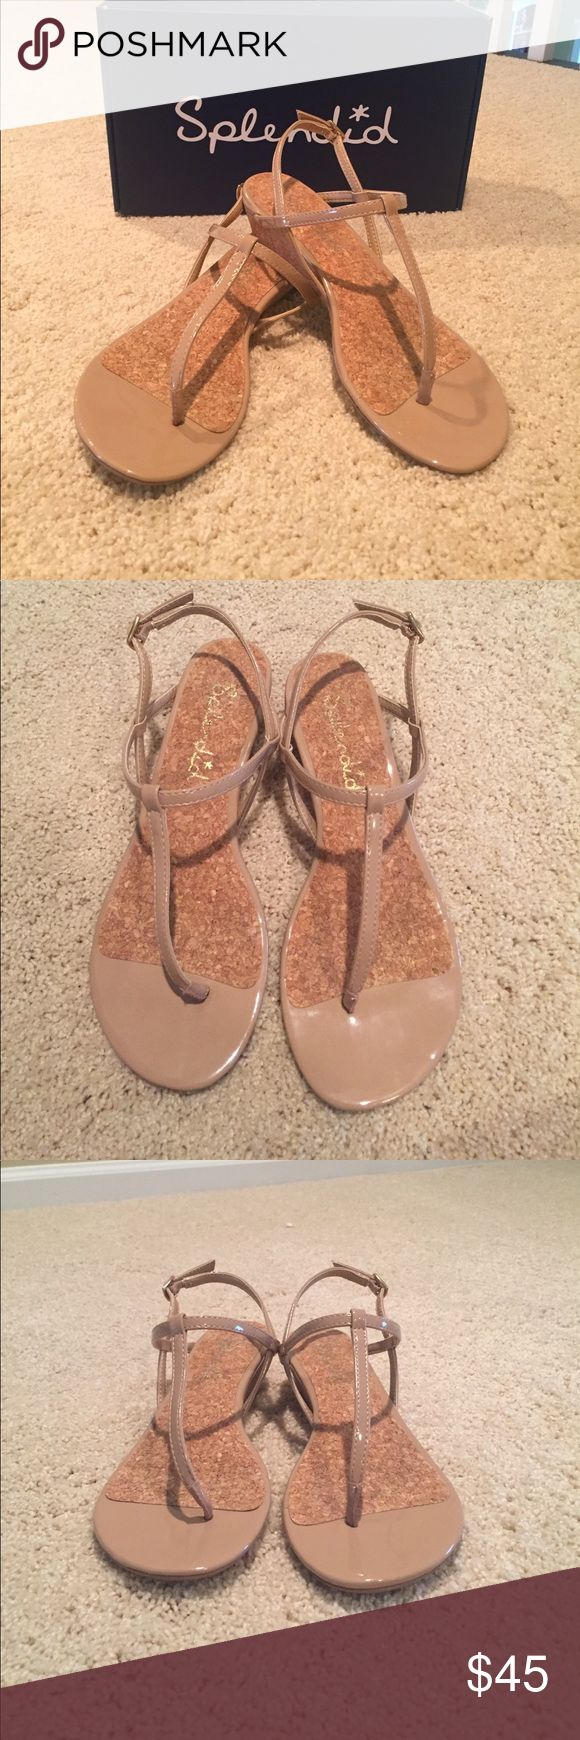 Splendid 'Edgewood' Sandal in nude, size 6.5 Splendid 'Edgewood' sandal in soft patent/nude, size 6.5. Worn 2 times with only signs of wear on bottom of sandals. Purchase includes original Splendid shoe box. Great condition, perfect for summer! Splendid Shoes Sandals